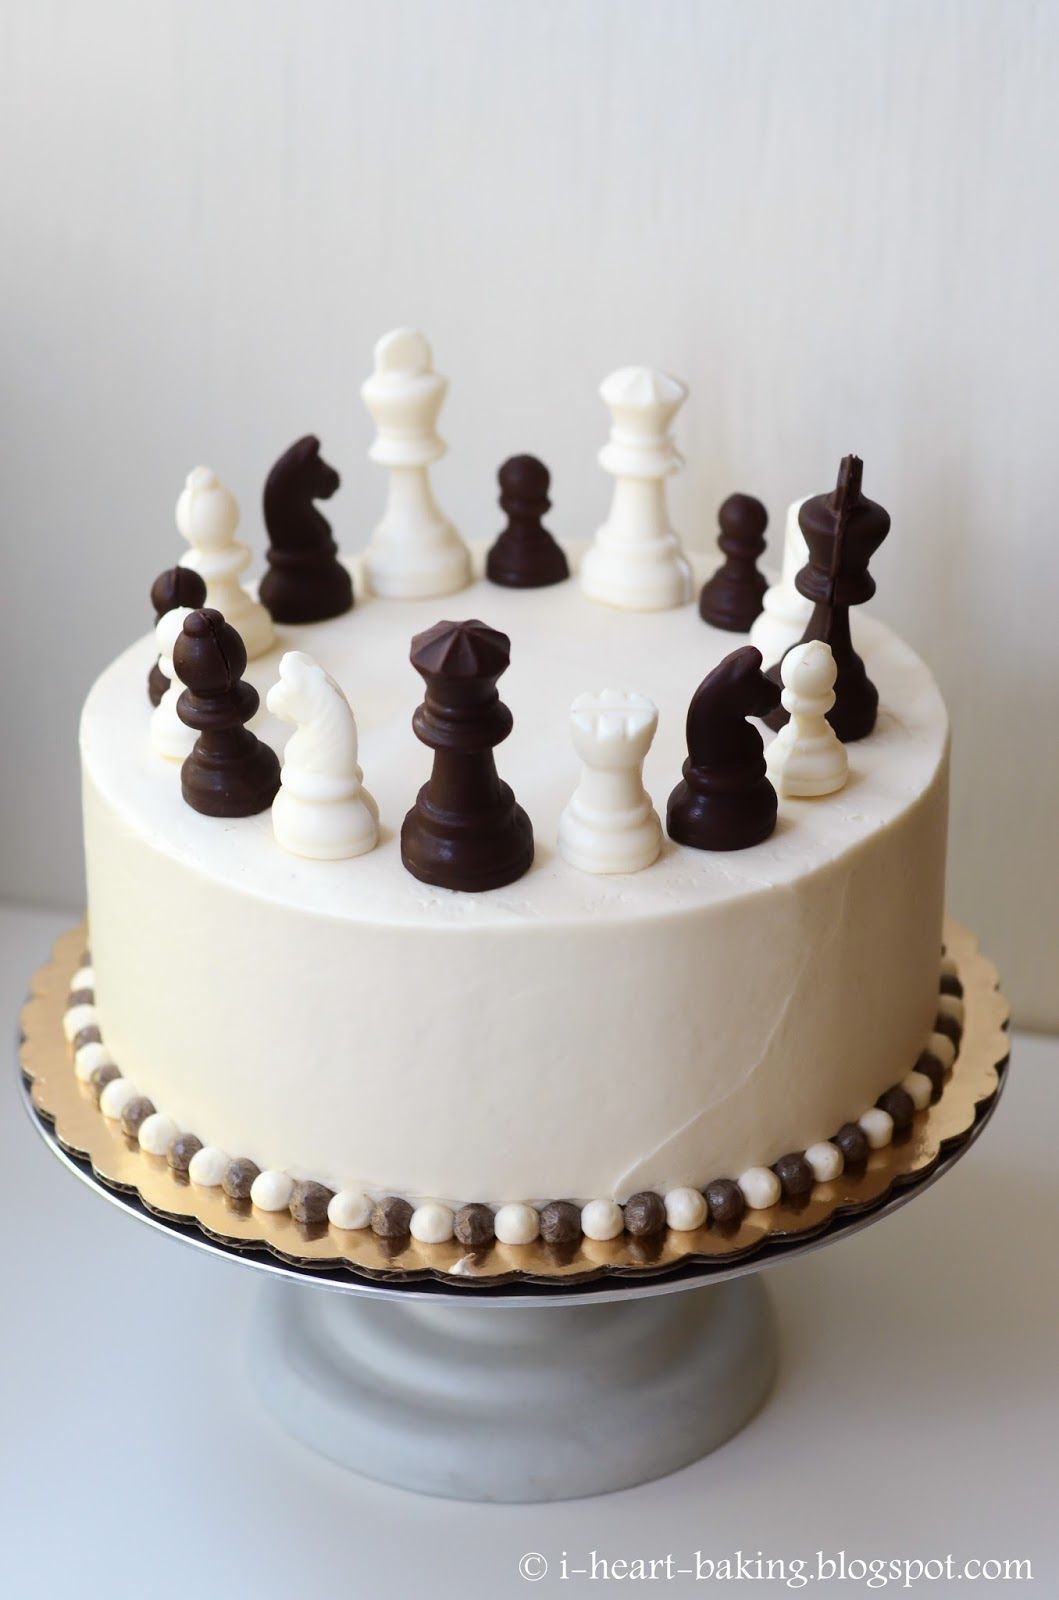 Swell Chess Cake With Handmade Chocolate Chess Pieces With Images Funny Birthday Cards Online Overcheapnameinfo